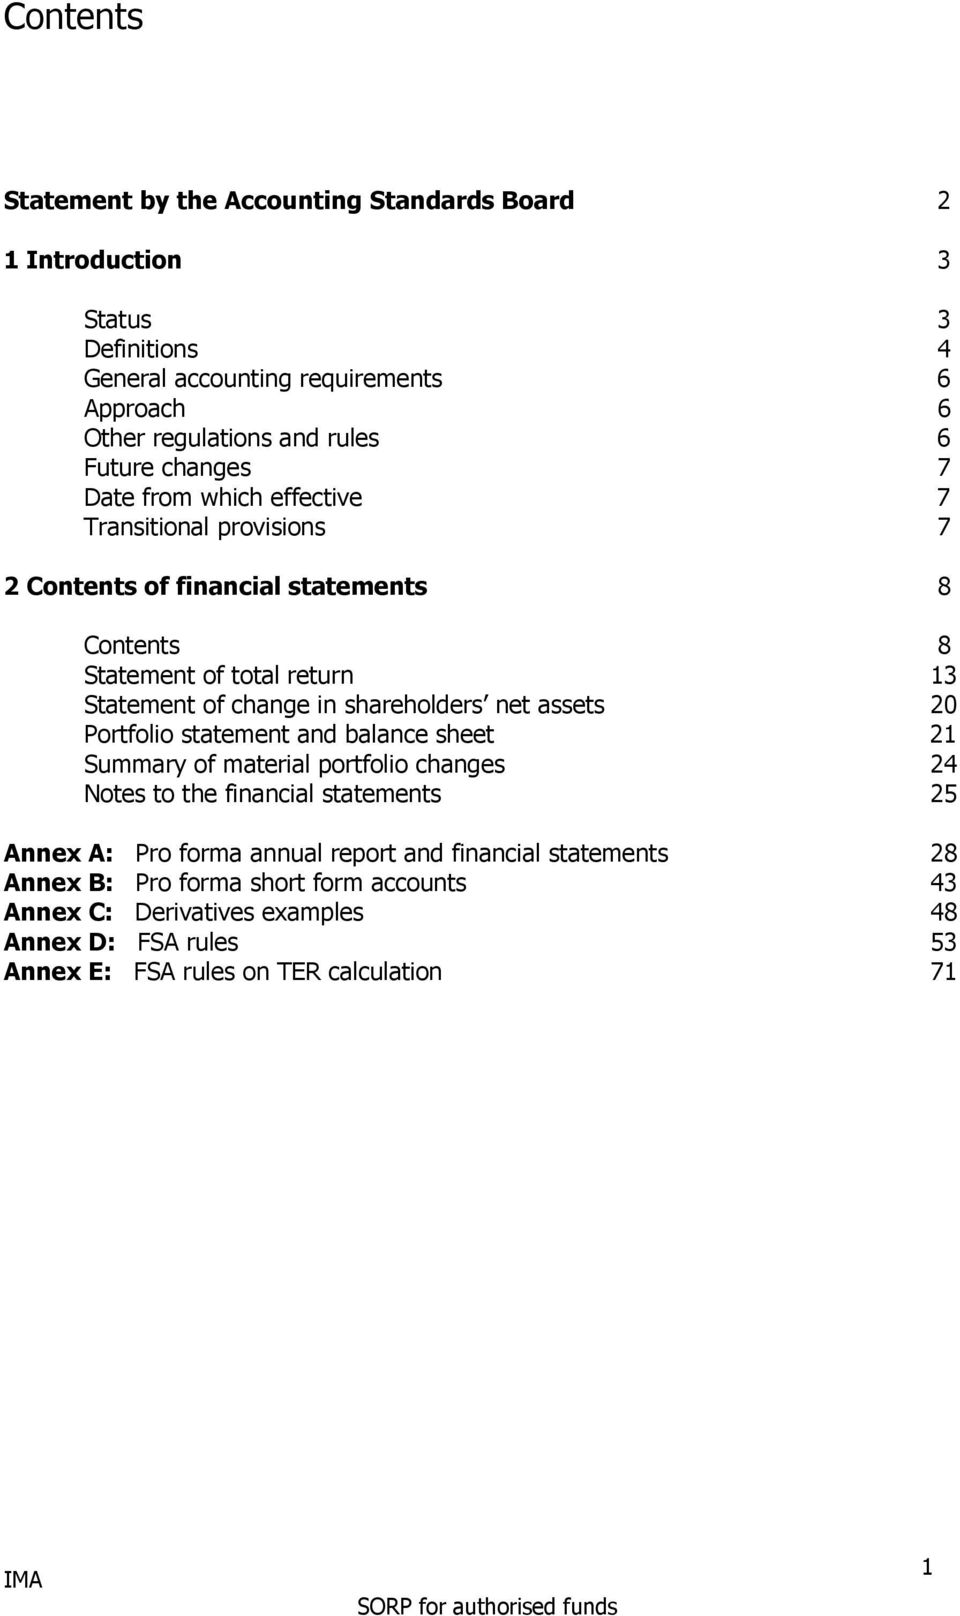 net assets 20 Portfolio statement and balance sheet 21 Summary of material portfolio changes 24 Notes to the financial statements 25 Annex A: Pro forma annual report and